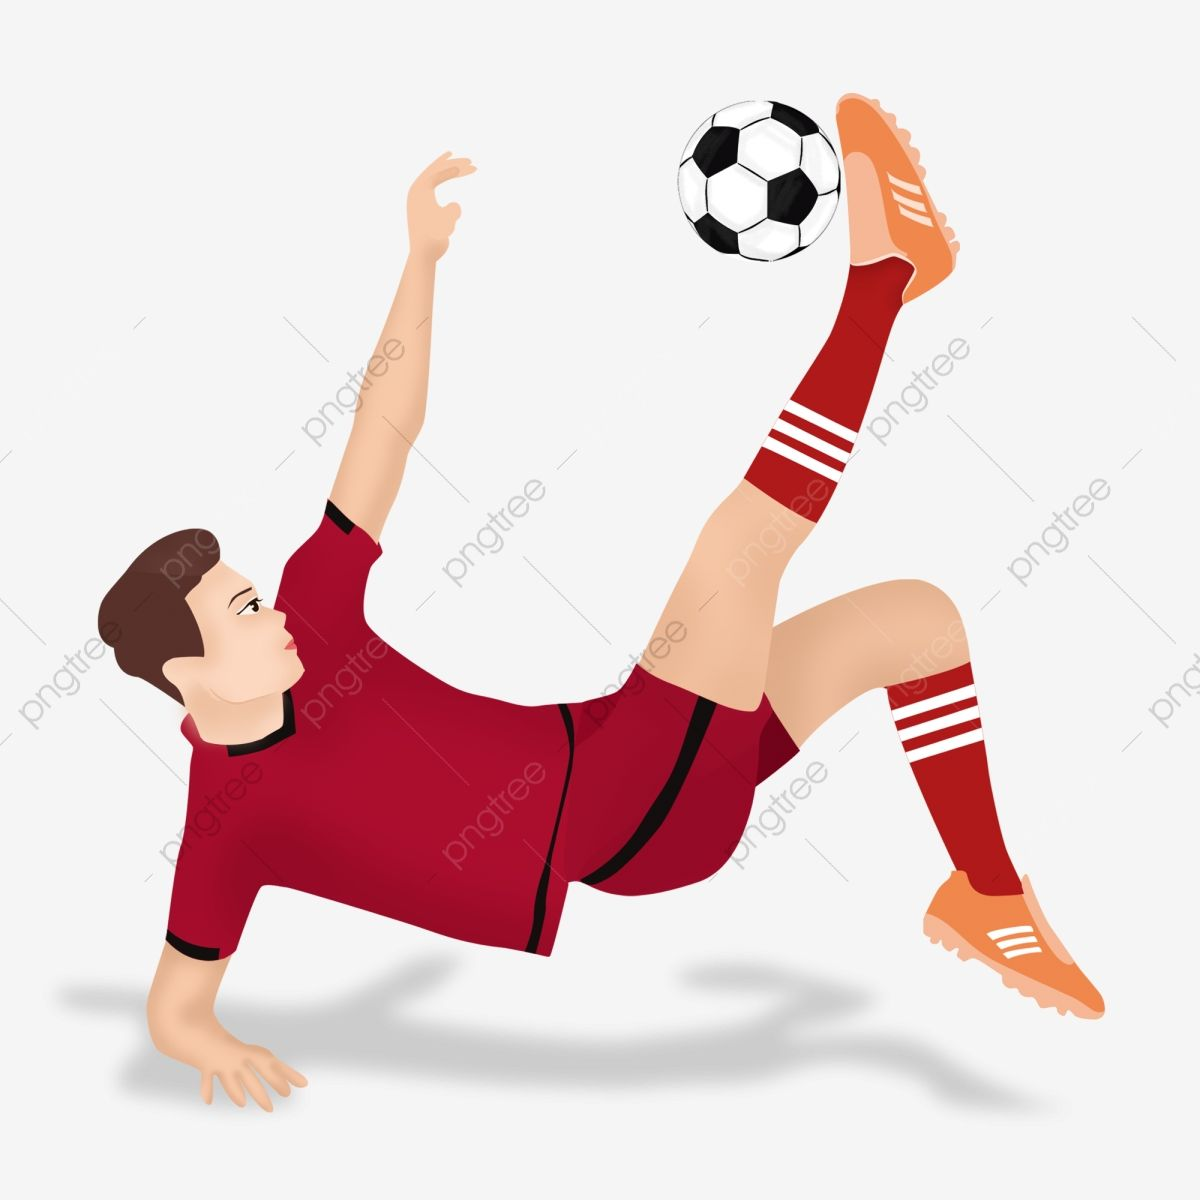 Football Player Character Material Creative Cartoon Soccer Player Png Transparent Image And Clipart For Free Download In 2020 Football Players Soccer Players Player Character